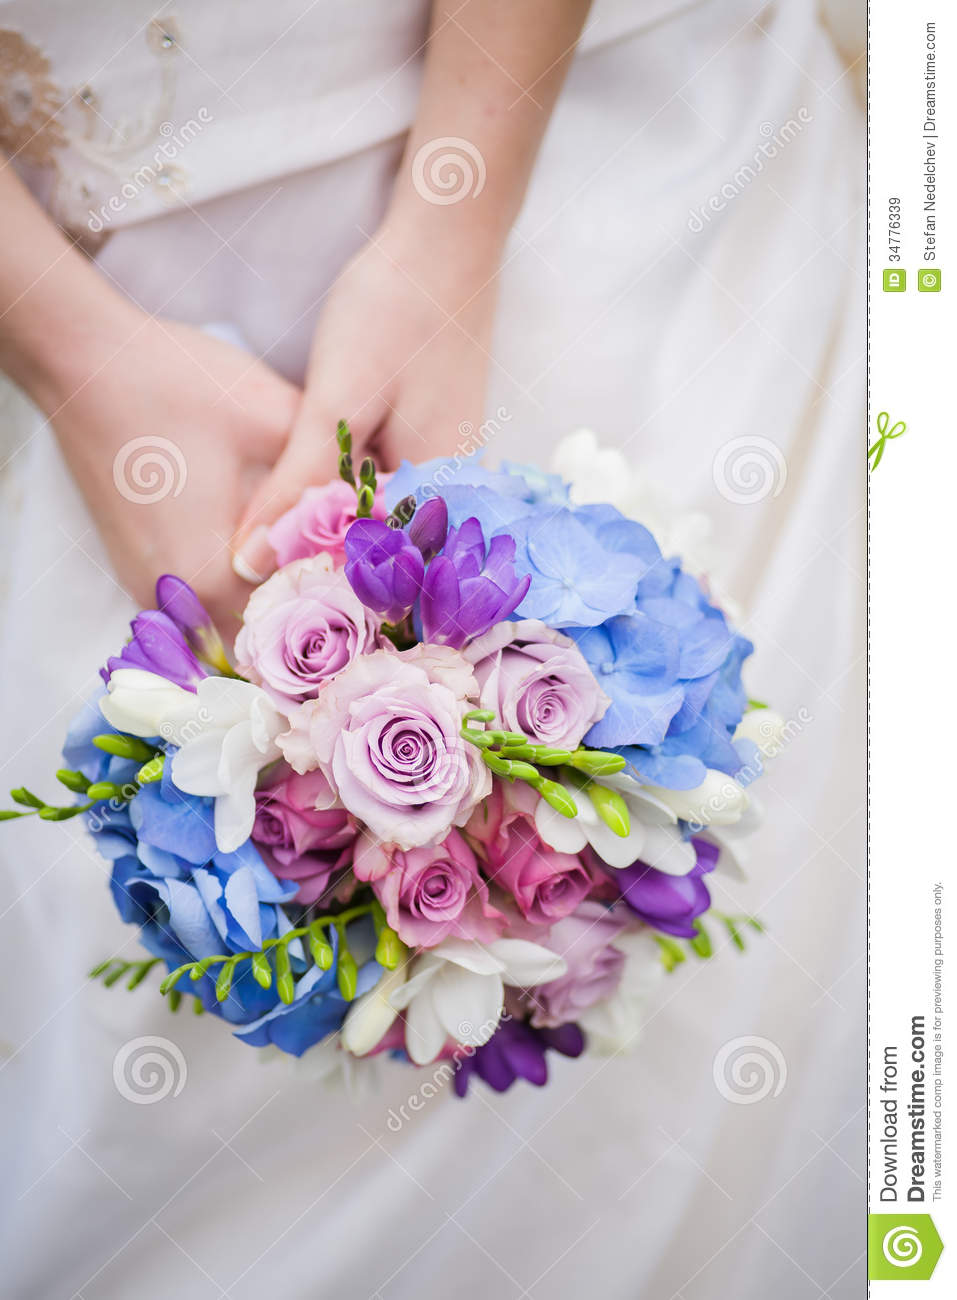 Wedding Bouquet Pink Blue : Bride hold colored blue pink wedding bouquet royalty free